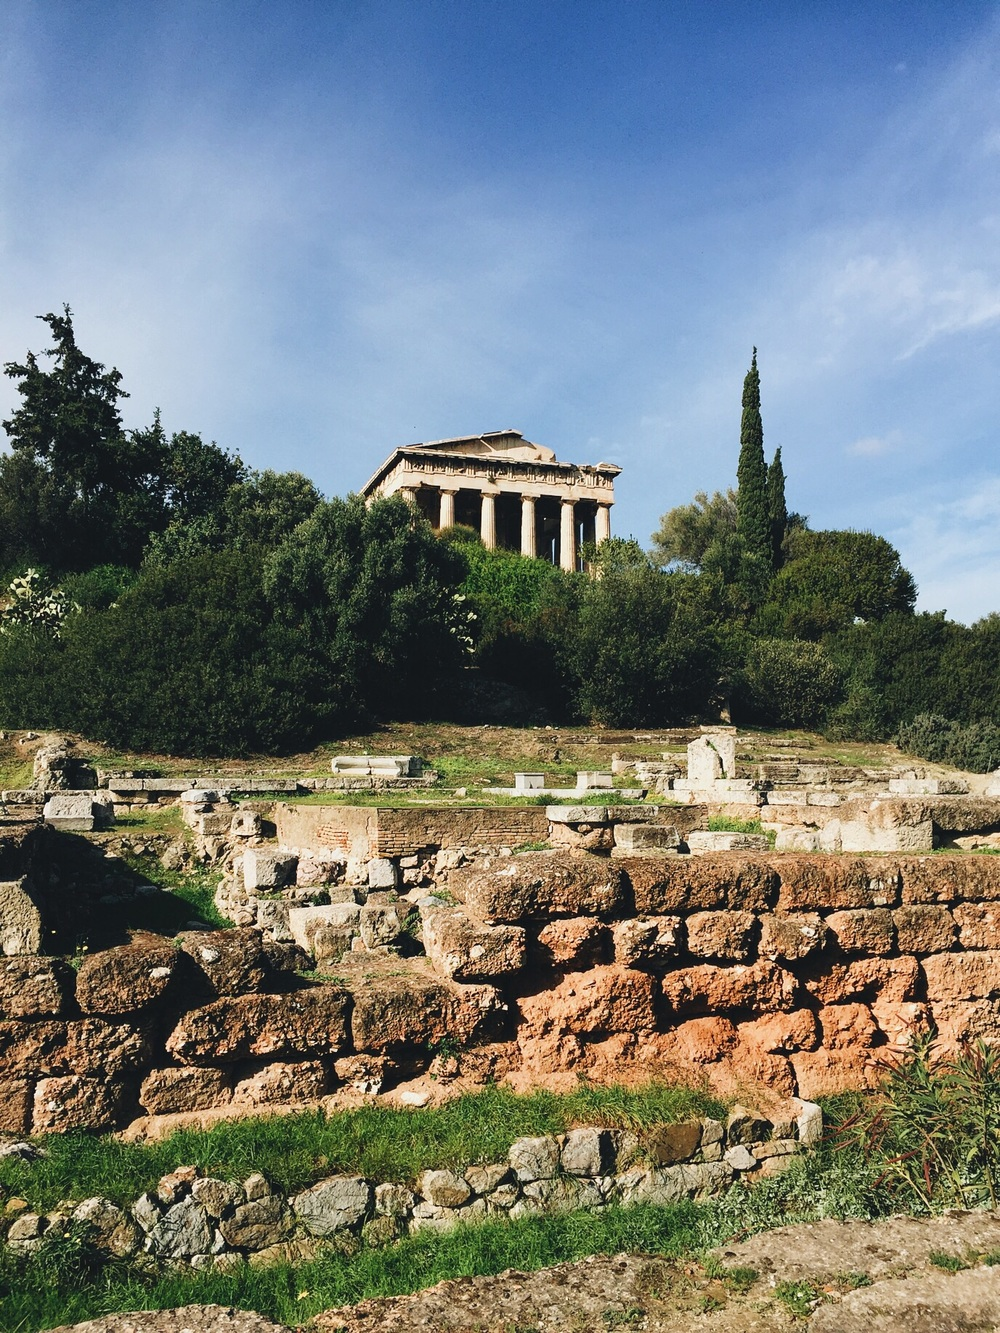 The Temple of Hephaestus